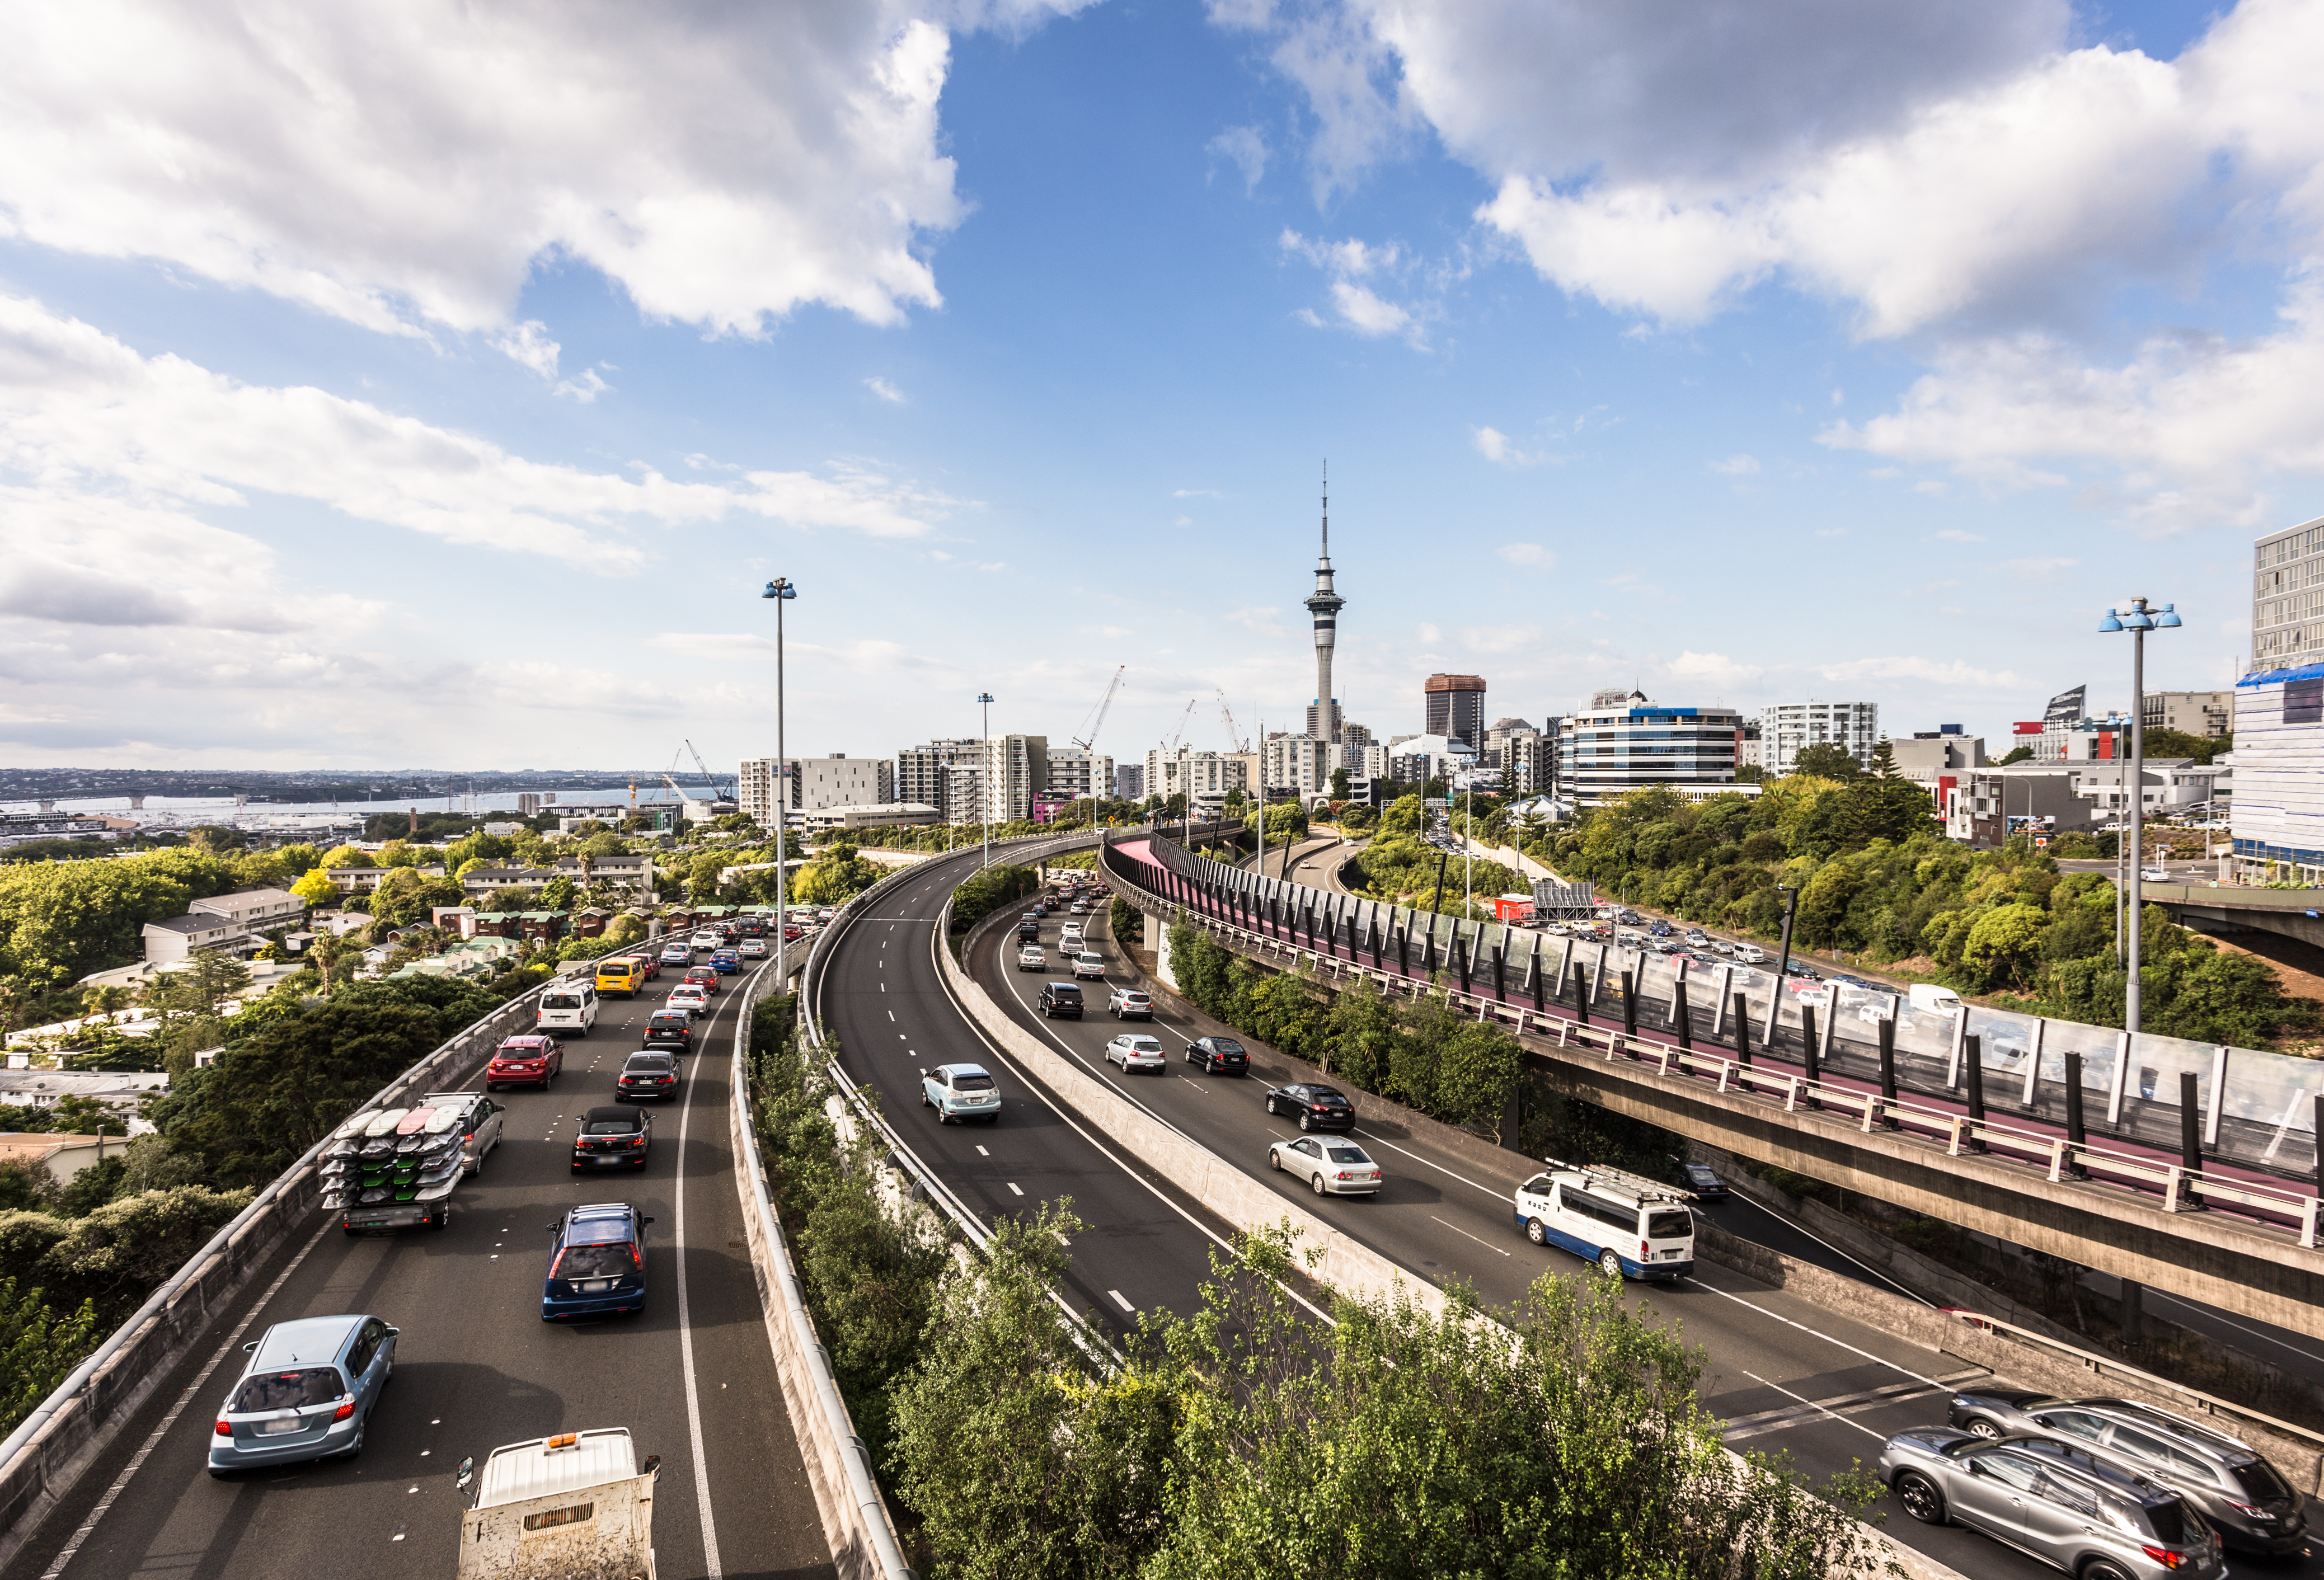 Auckland to remain in Alert Level 3 for two more weeks